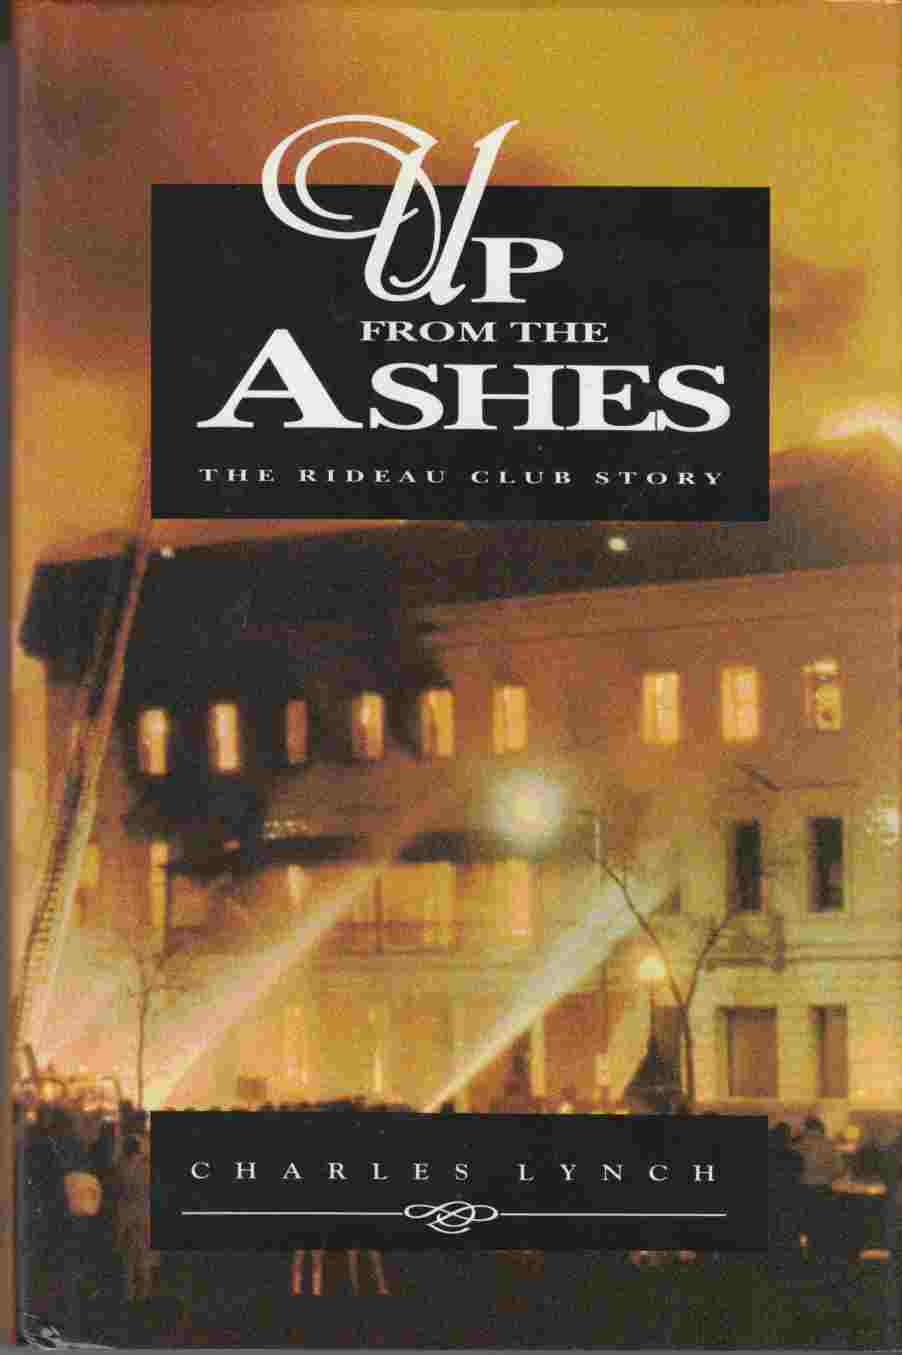 Image for Up from the Ashes The Rideau Club Story